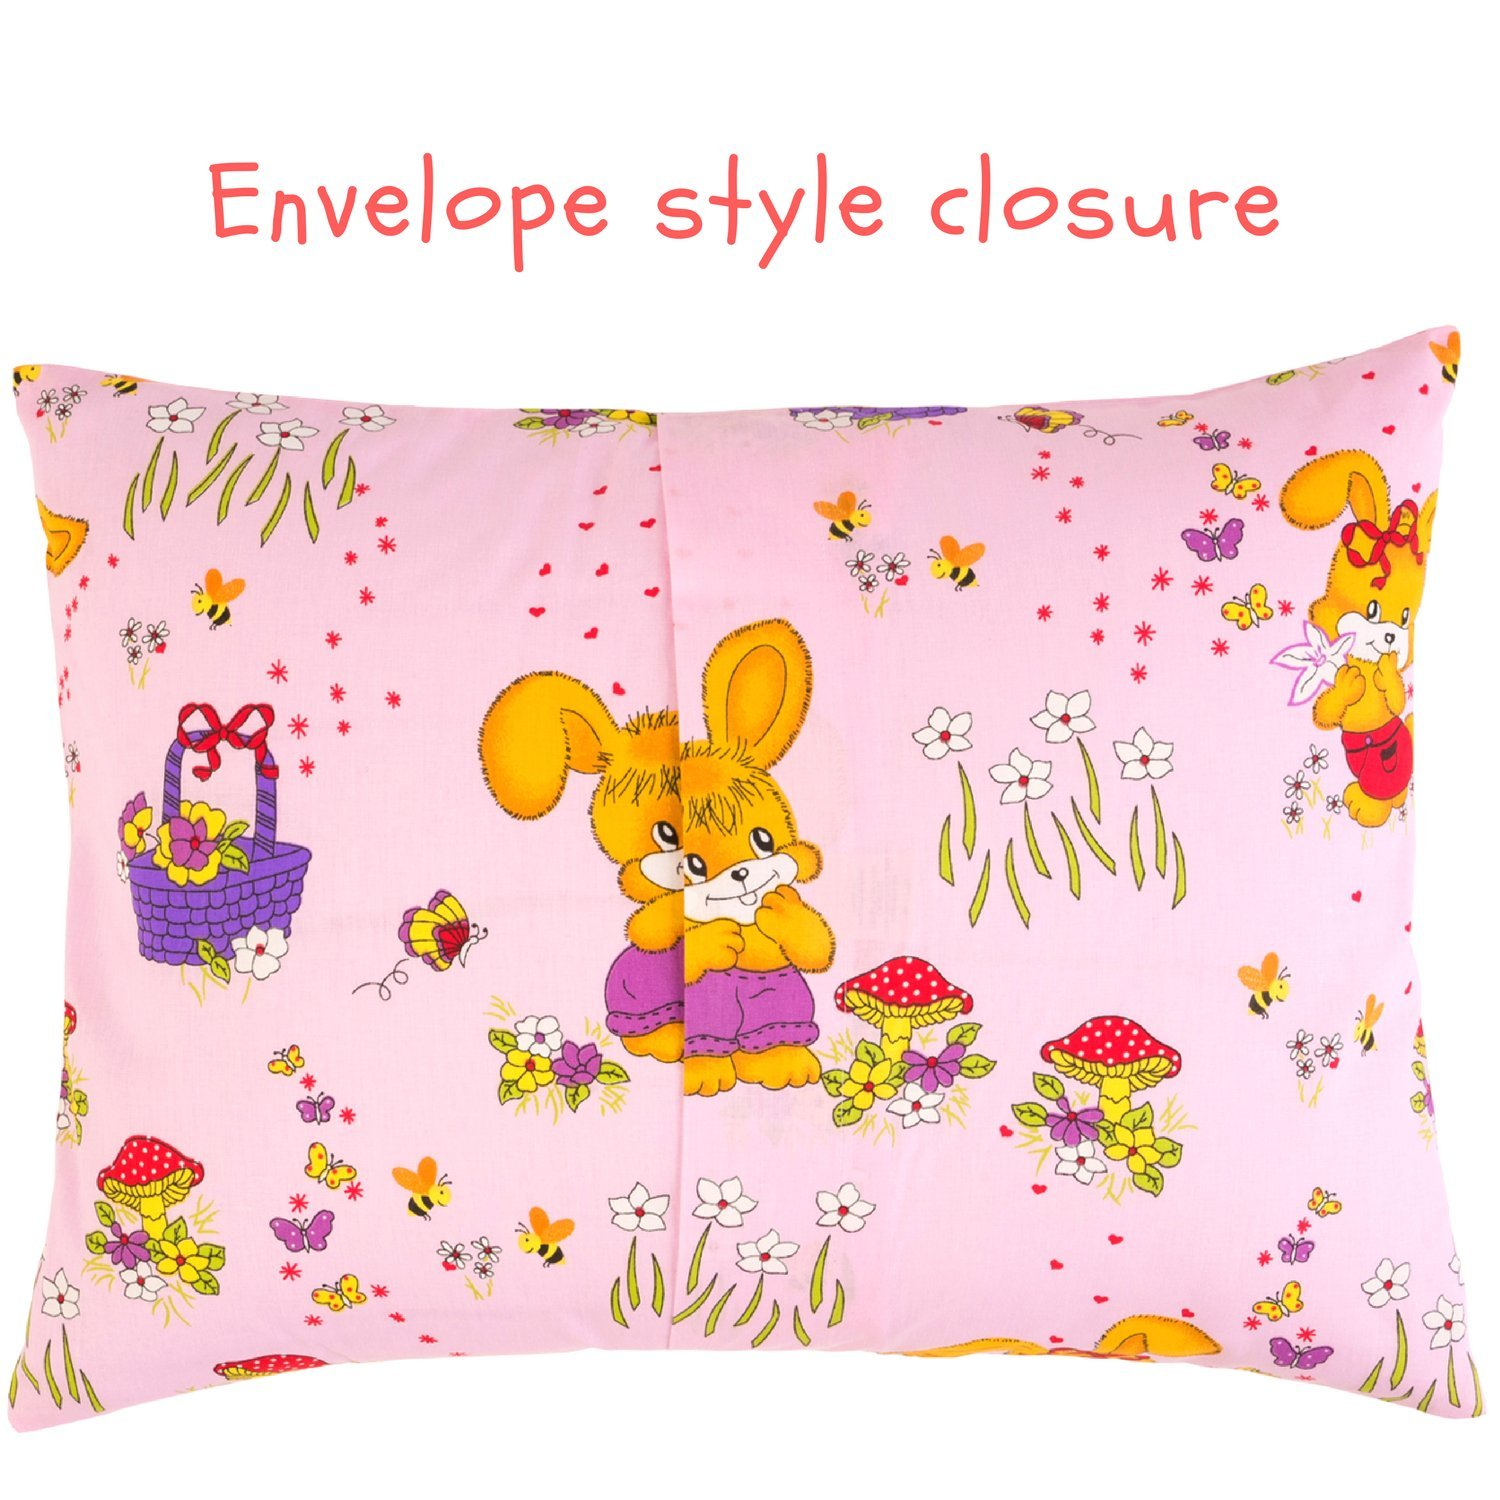 Toddler Pillowcase 13x18 by Comfy Turtles 100 Natural Cotton or Get a Smile from a Kid with Cute Animals of this Soft Pillow Cover for Boys and Girls Beige Turtles